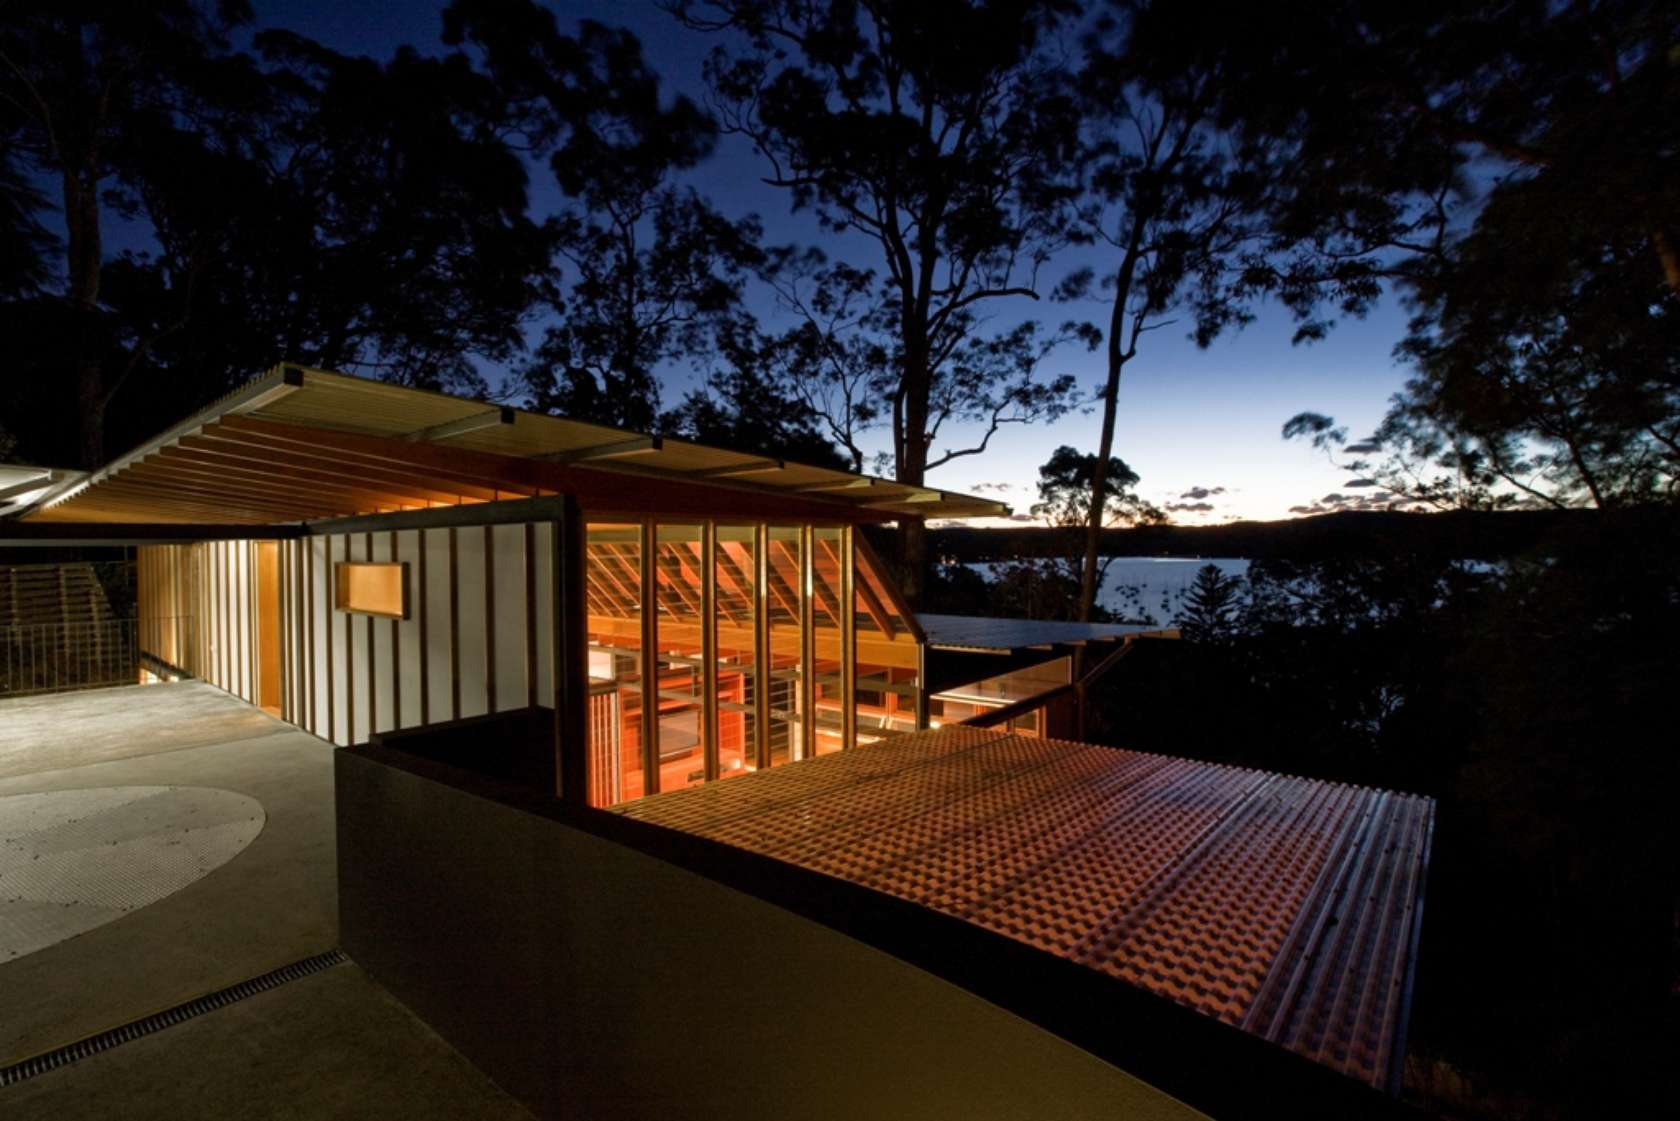 Hilltop House by Richard Cole Architecture (via Lunchbox Architect)